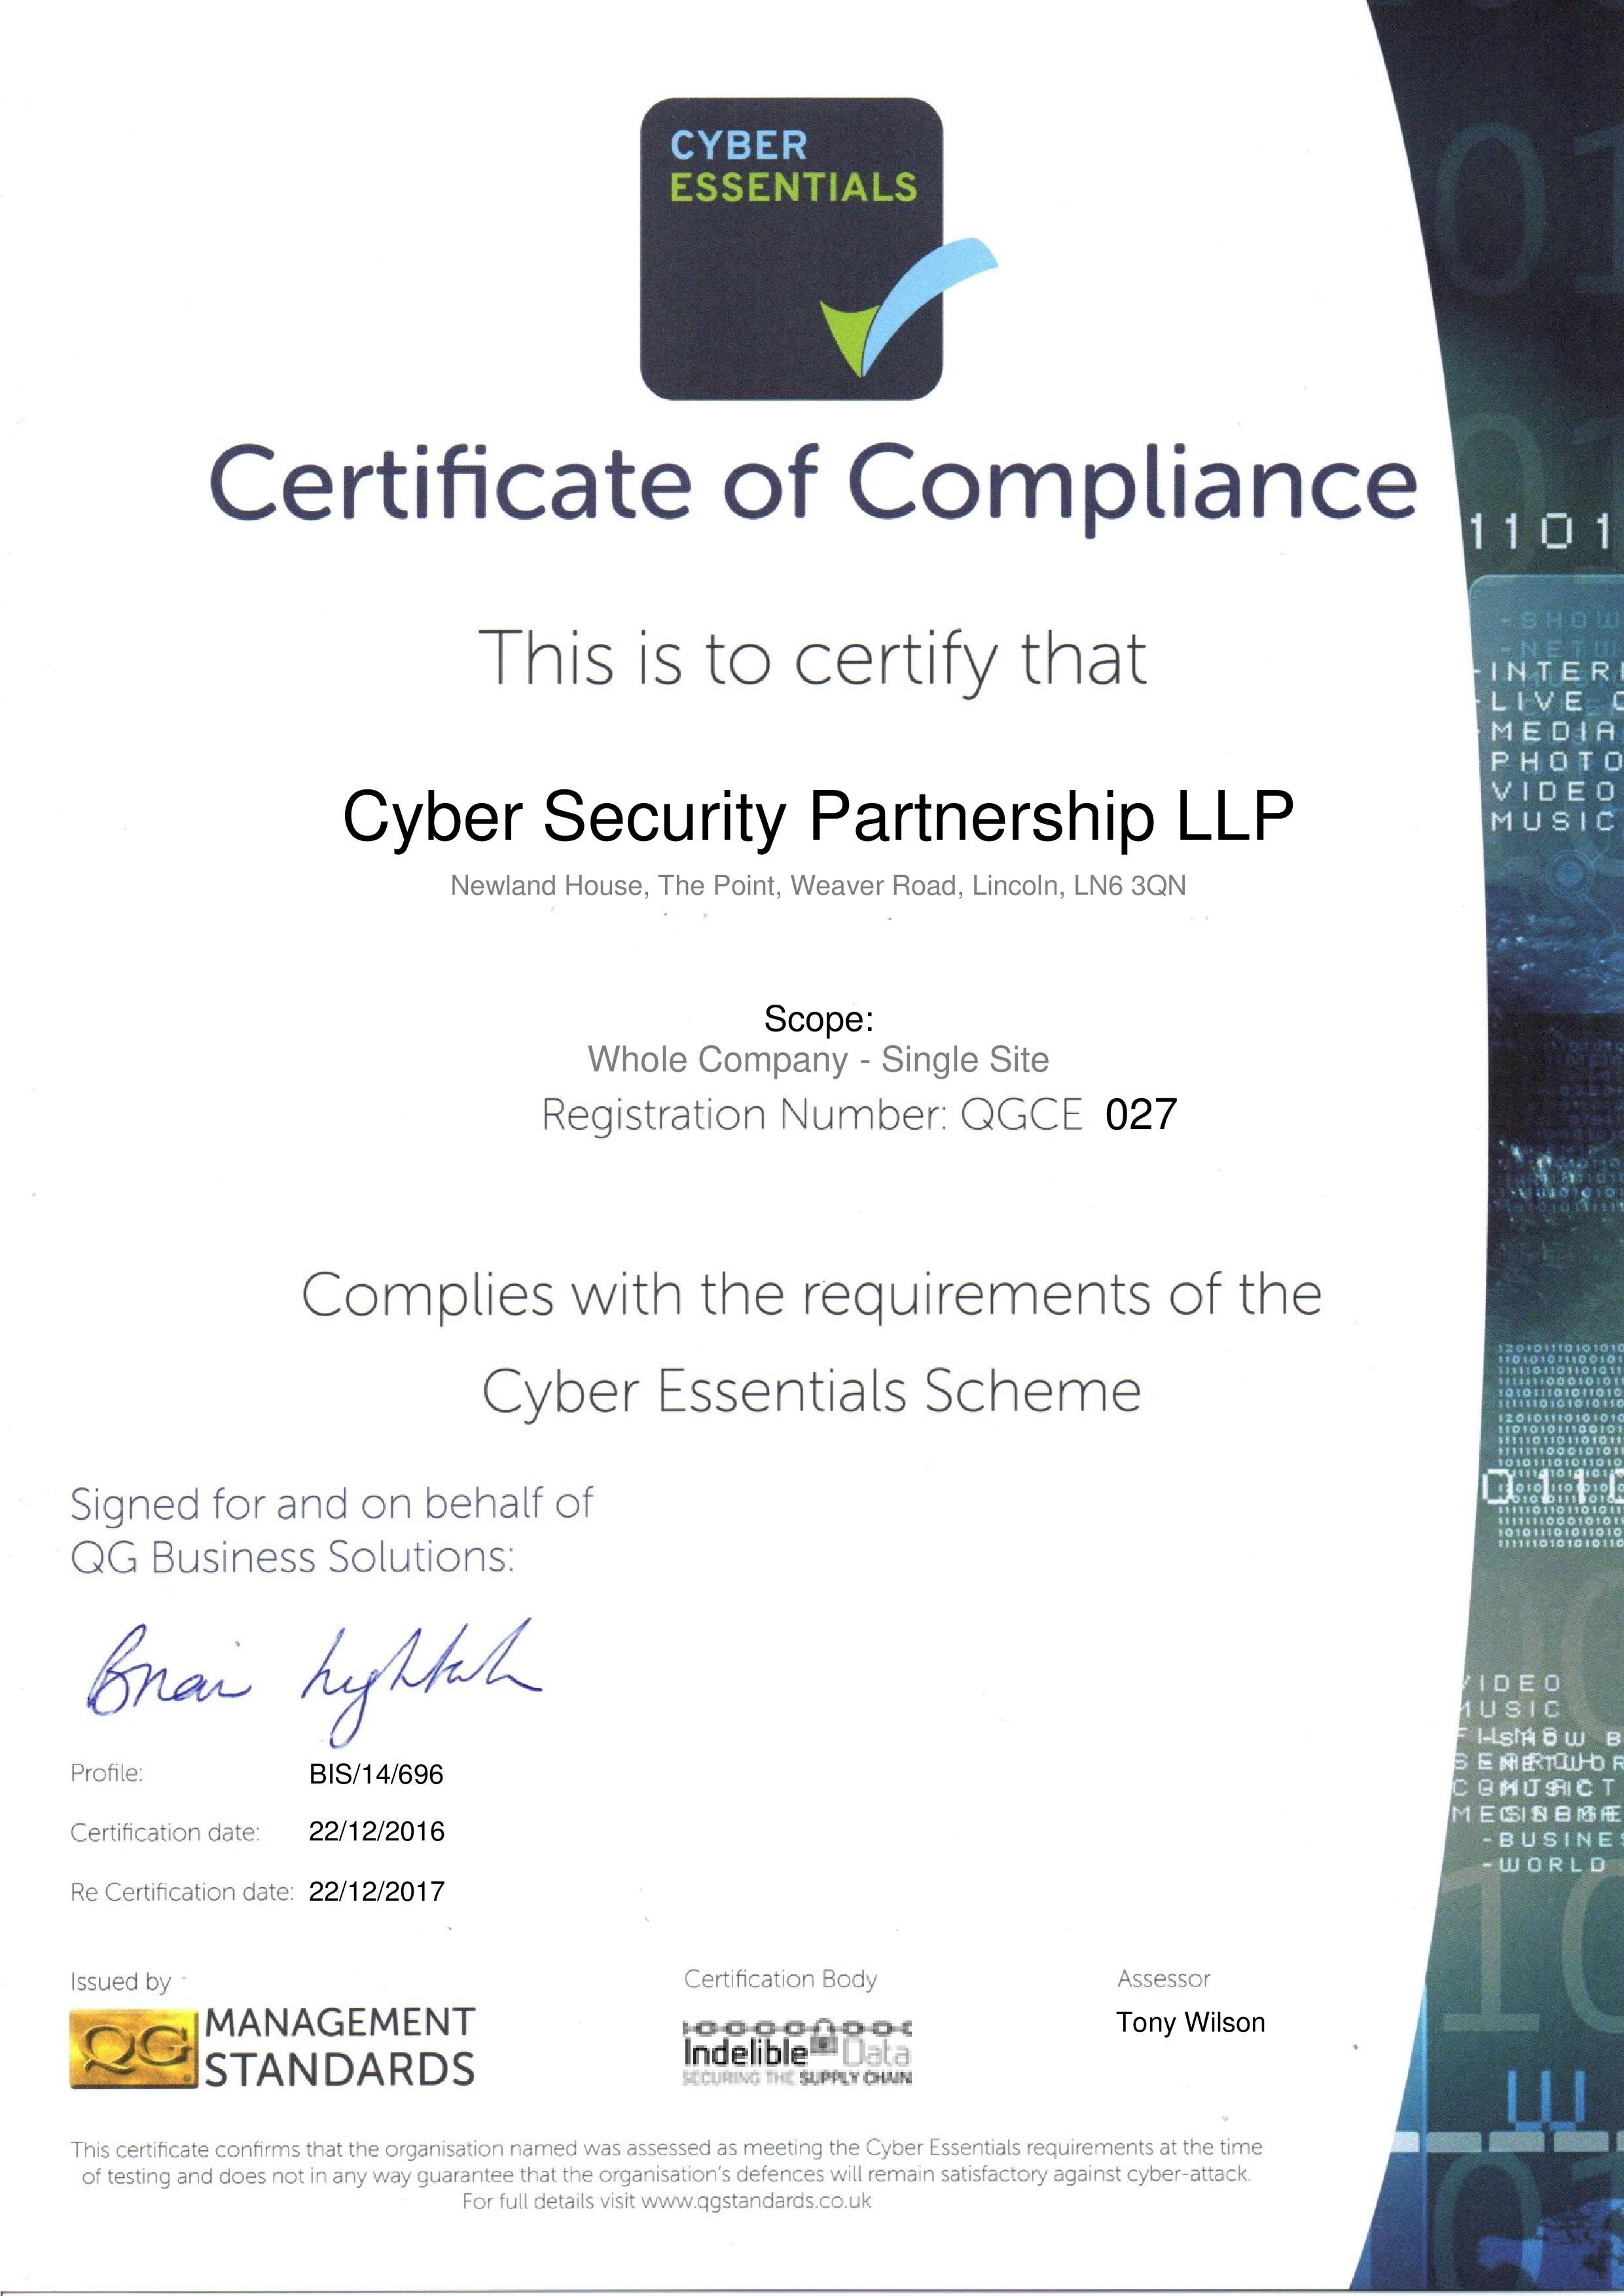 QGCE027 Cyber Security Partnership LLP